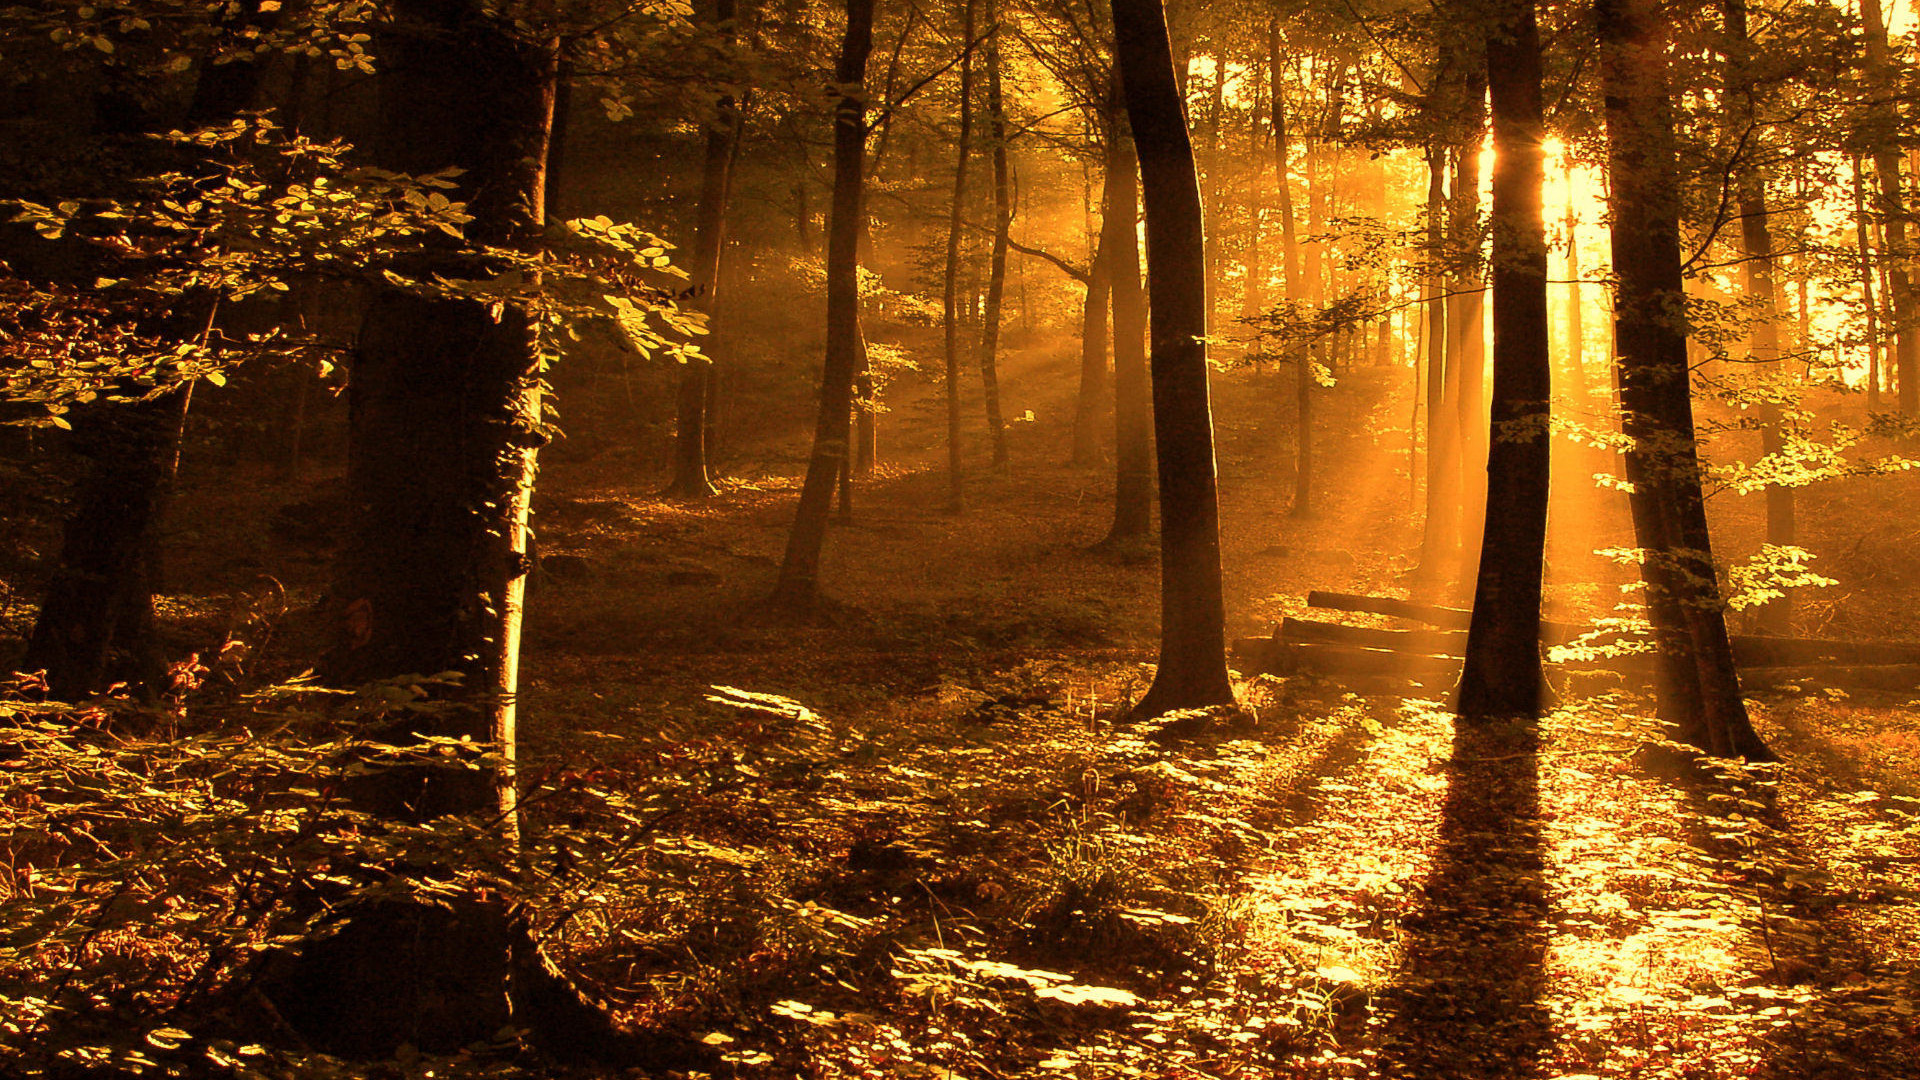 1920x1080 nature, Sun, trees, forest, woods, sunlight :: Wallpapers